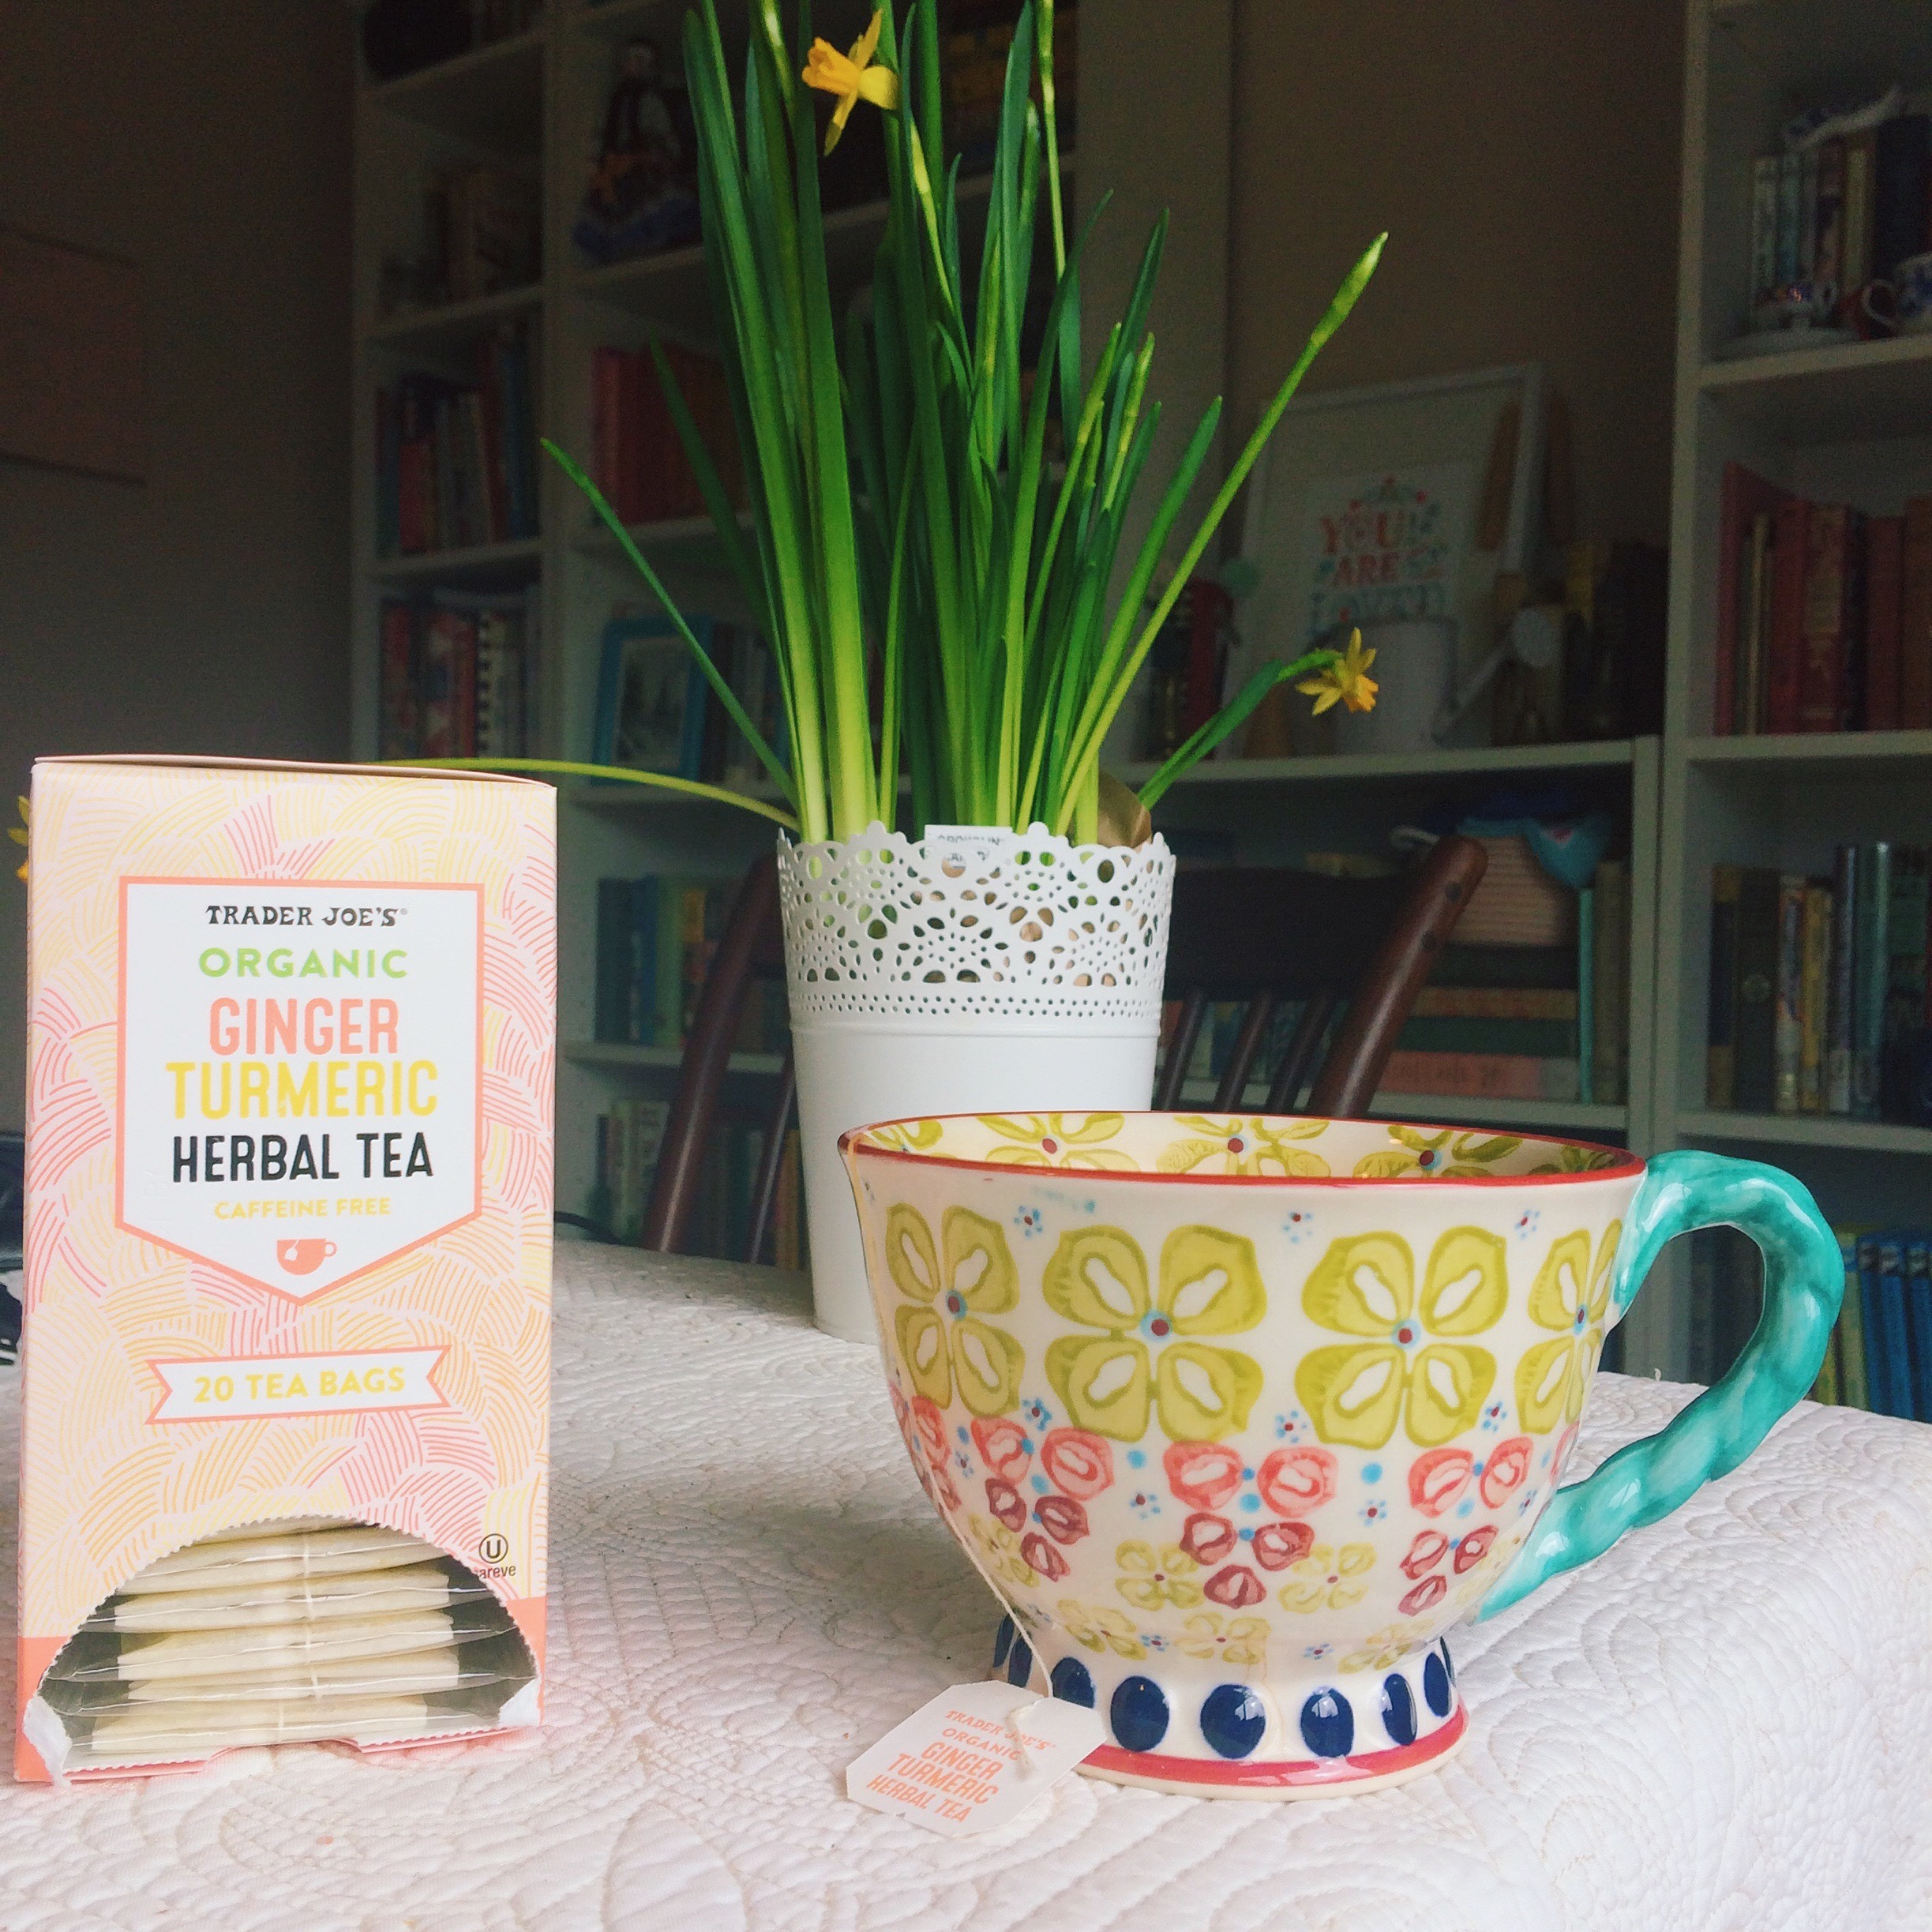 Trader Joe's Ginger Turmeric Tea and tete-a-tete narcissus and teacup